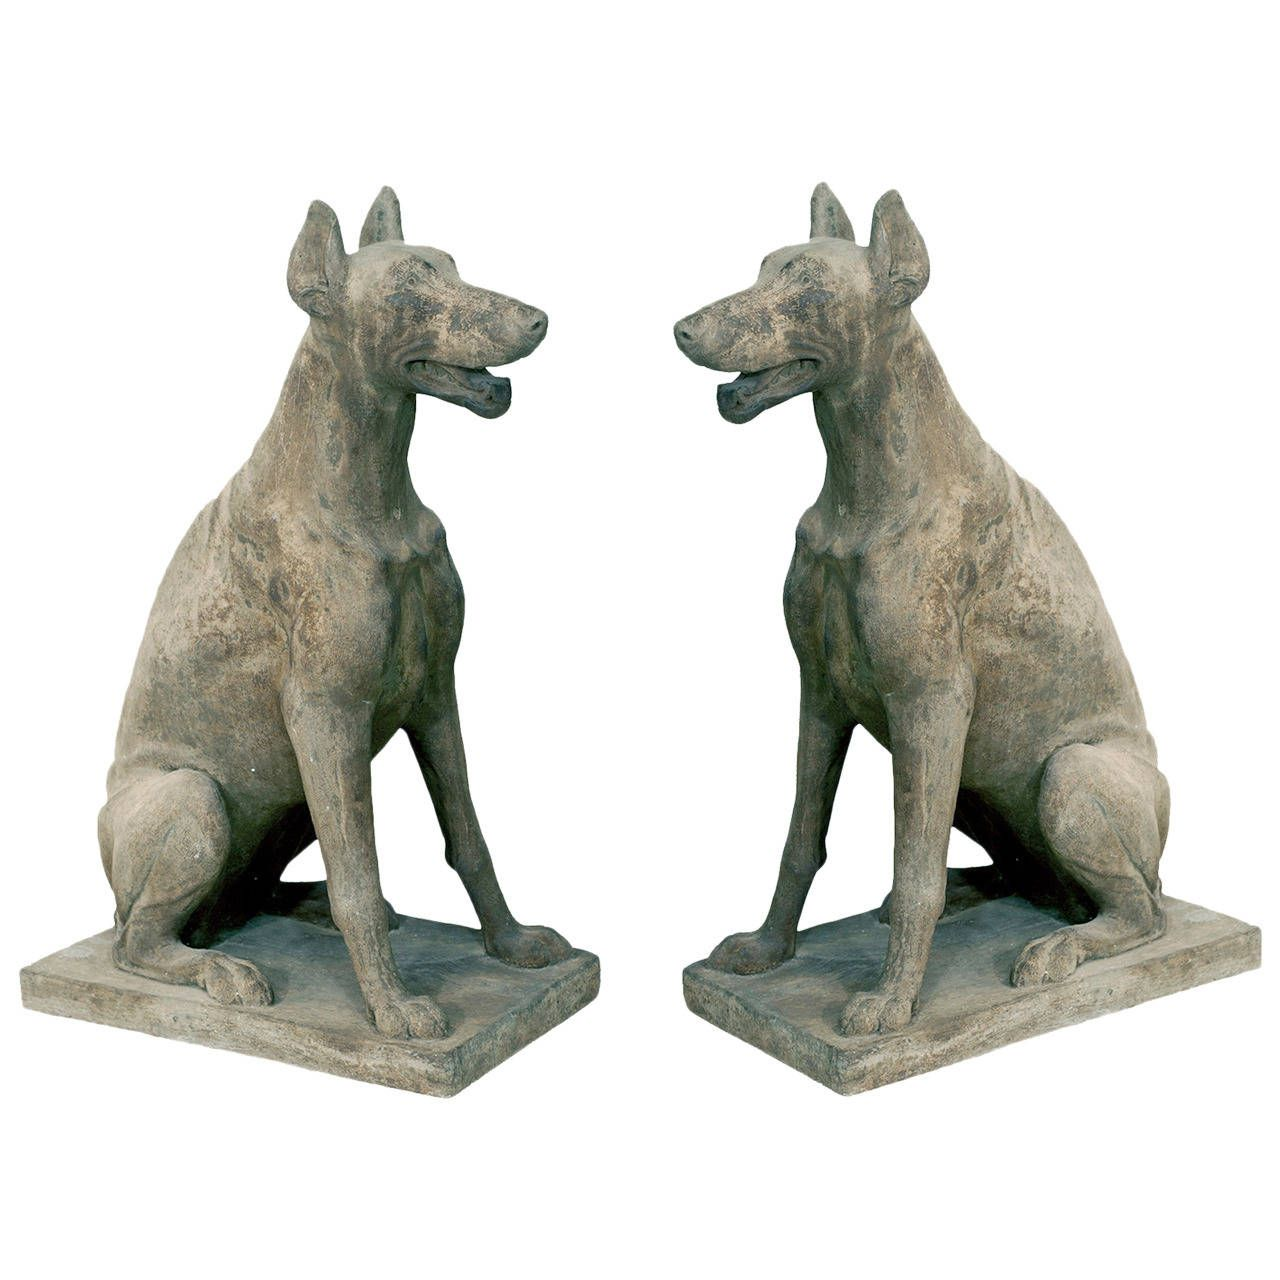 Antique Pair Of Cast Stone Garden Statuary Dogs